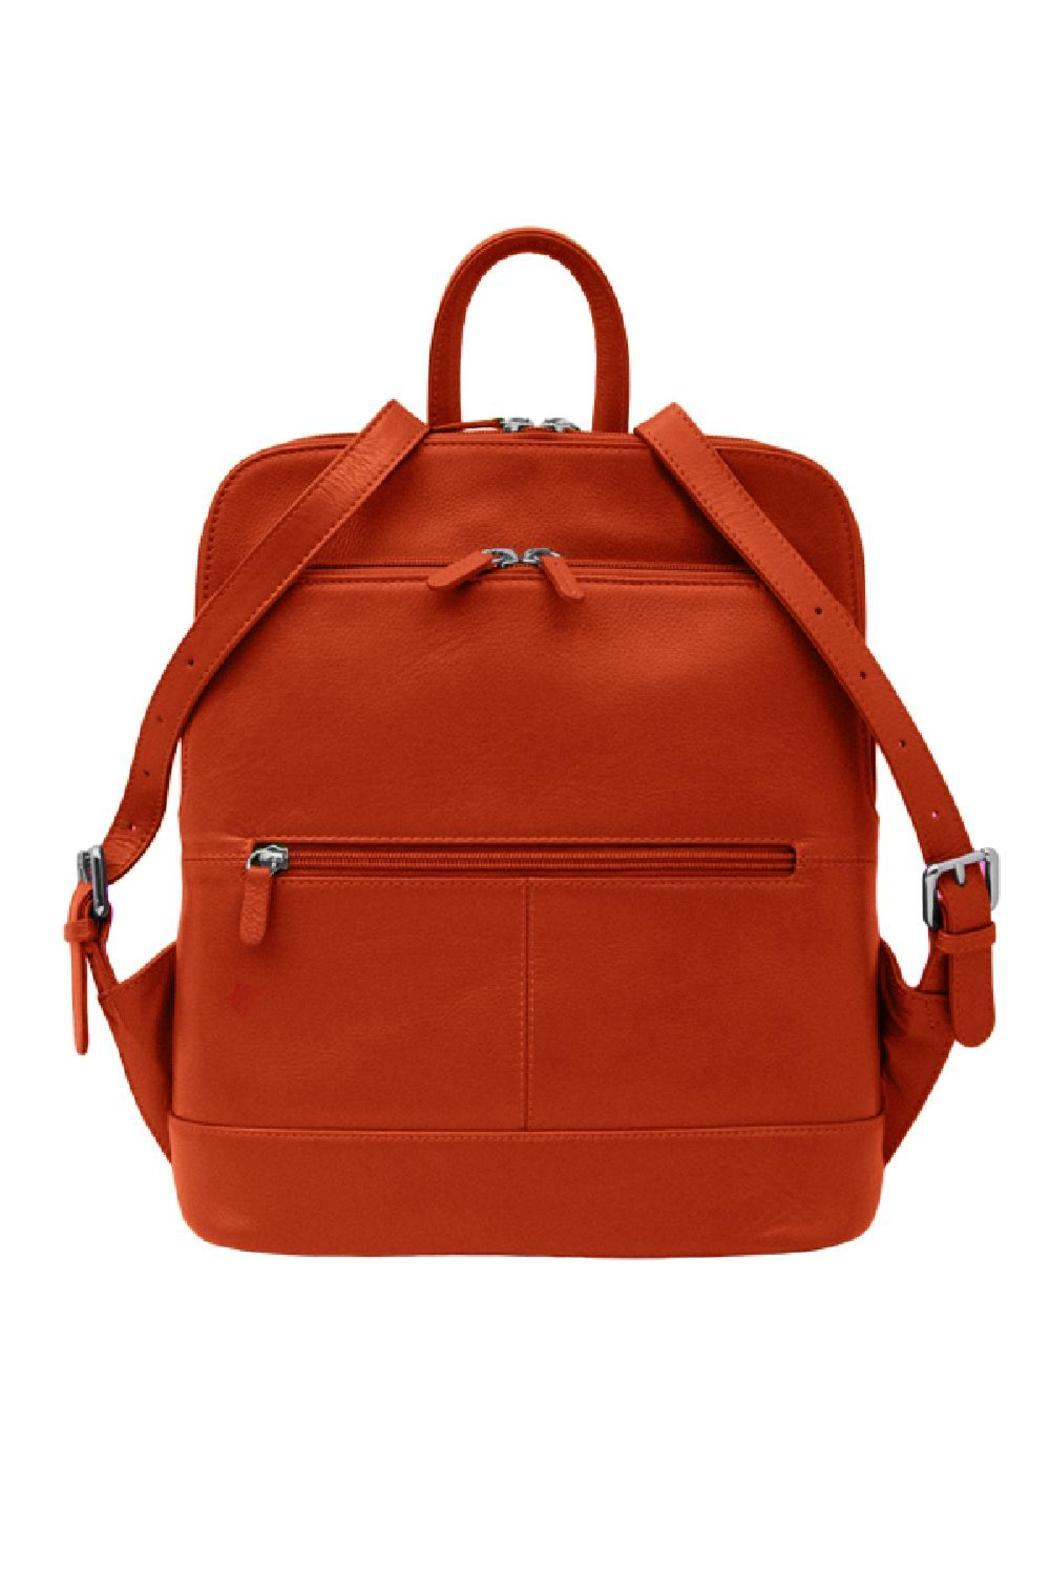 los angeles good quality brand new ILI Leather Backpack Handbag from Columbus by Audacious ...